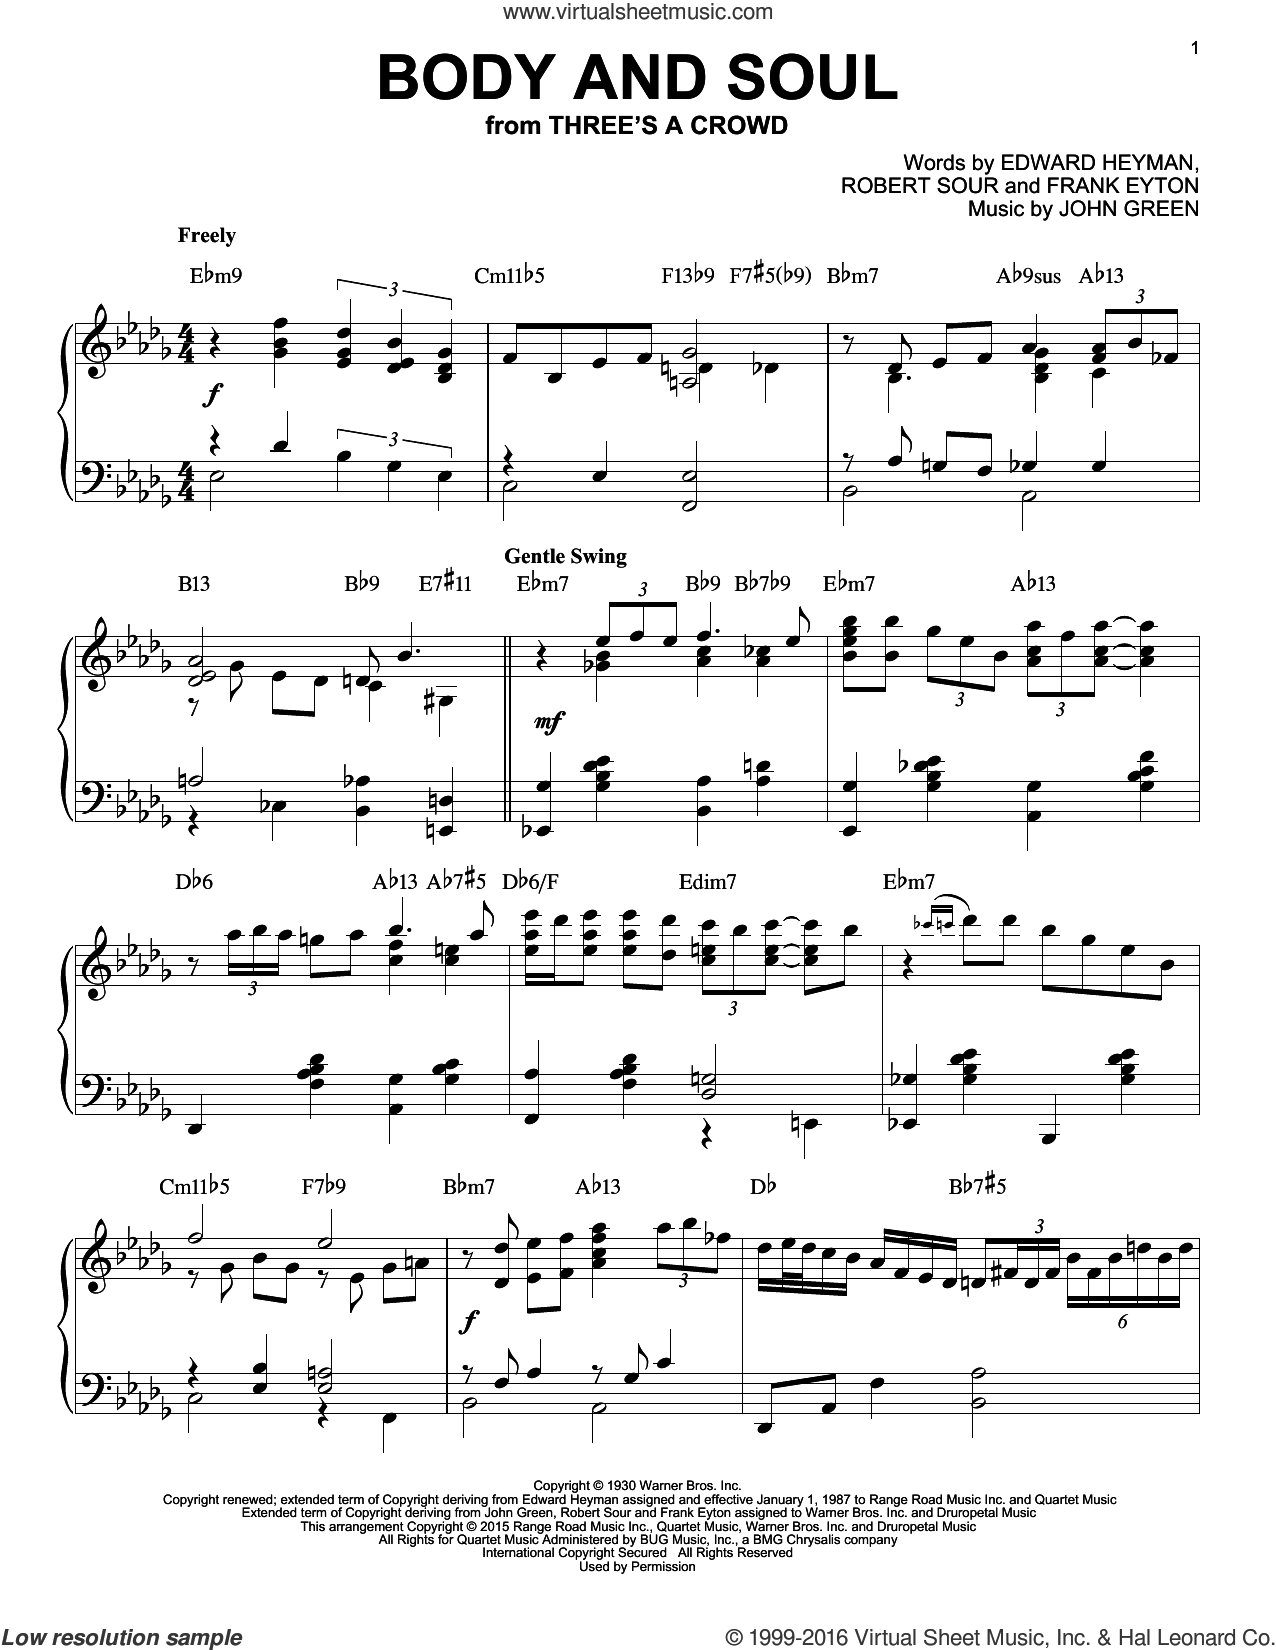 Body And Soul sheet music for piano solo by Tony Bennett & Amy Winehouse, Edward Heyman, Frank Eyton, Johnny Green and Robert Sour, intermediate piano. Score Image Preview.